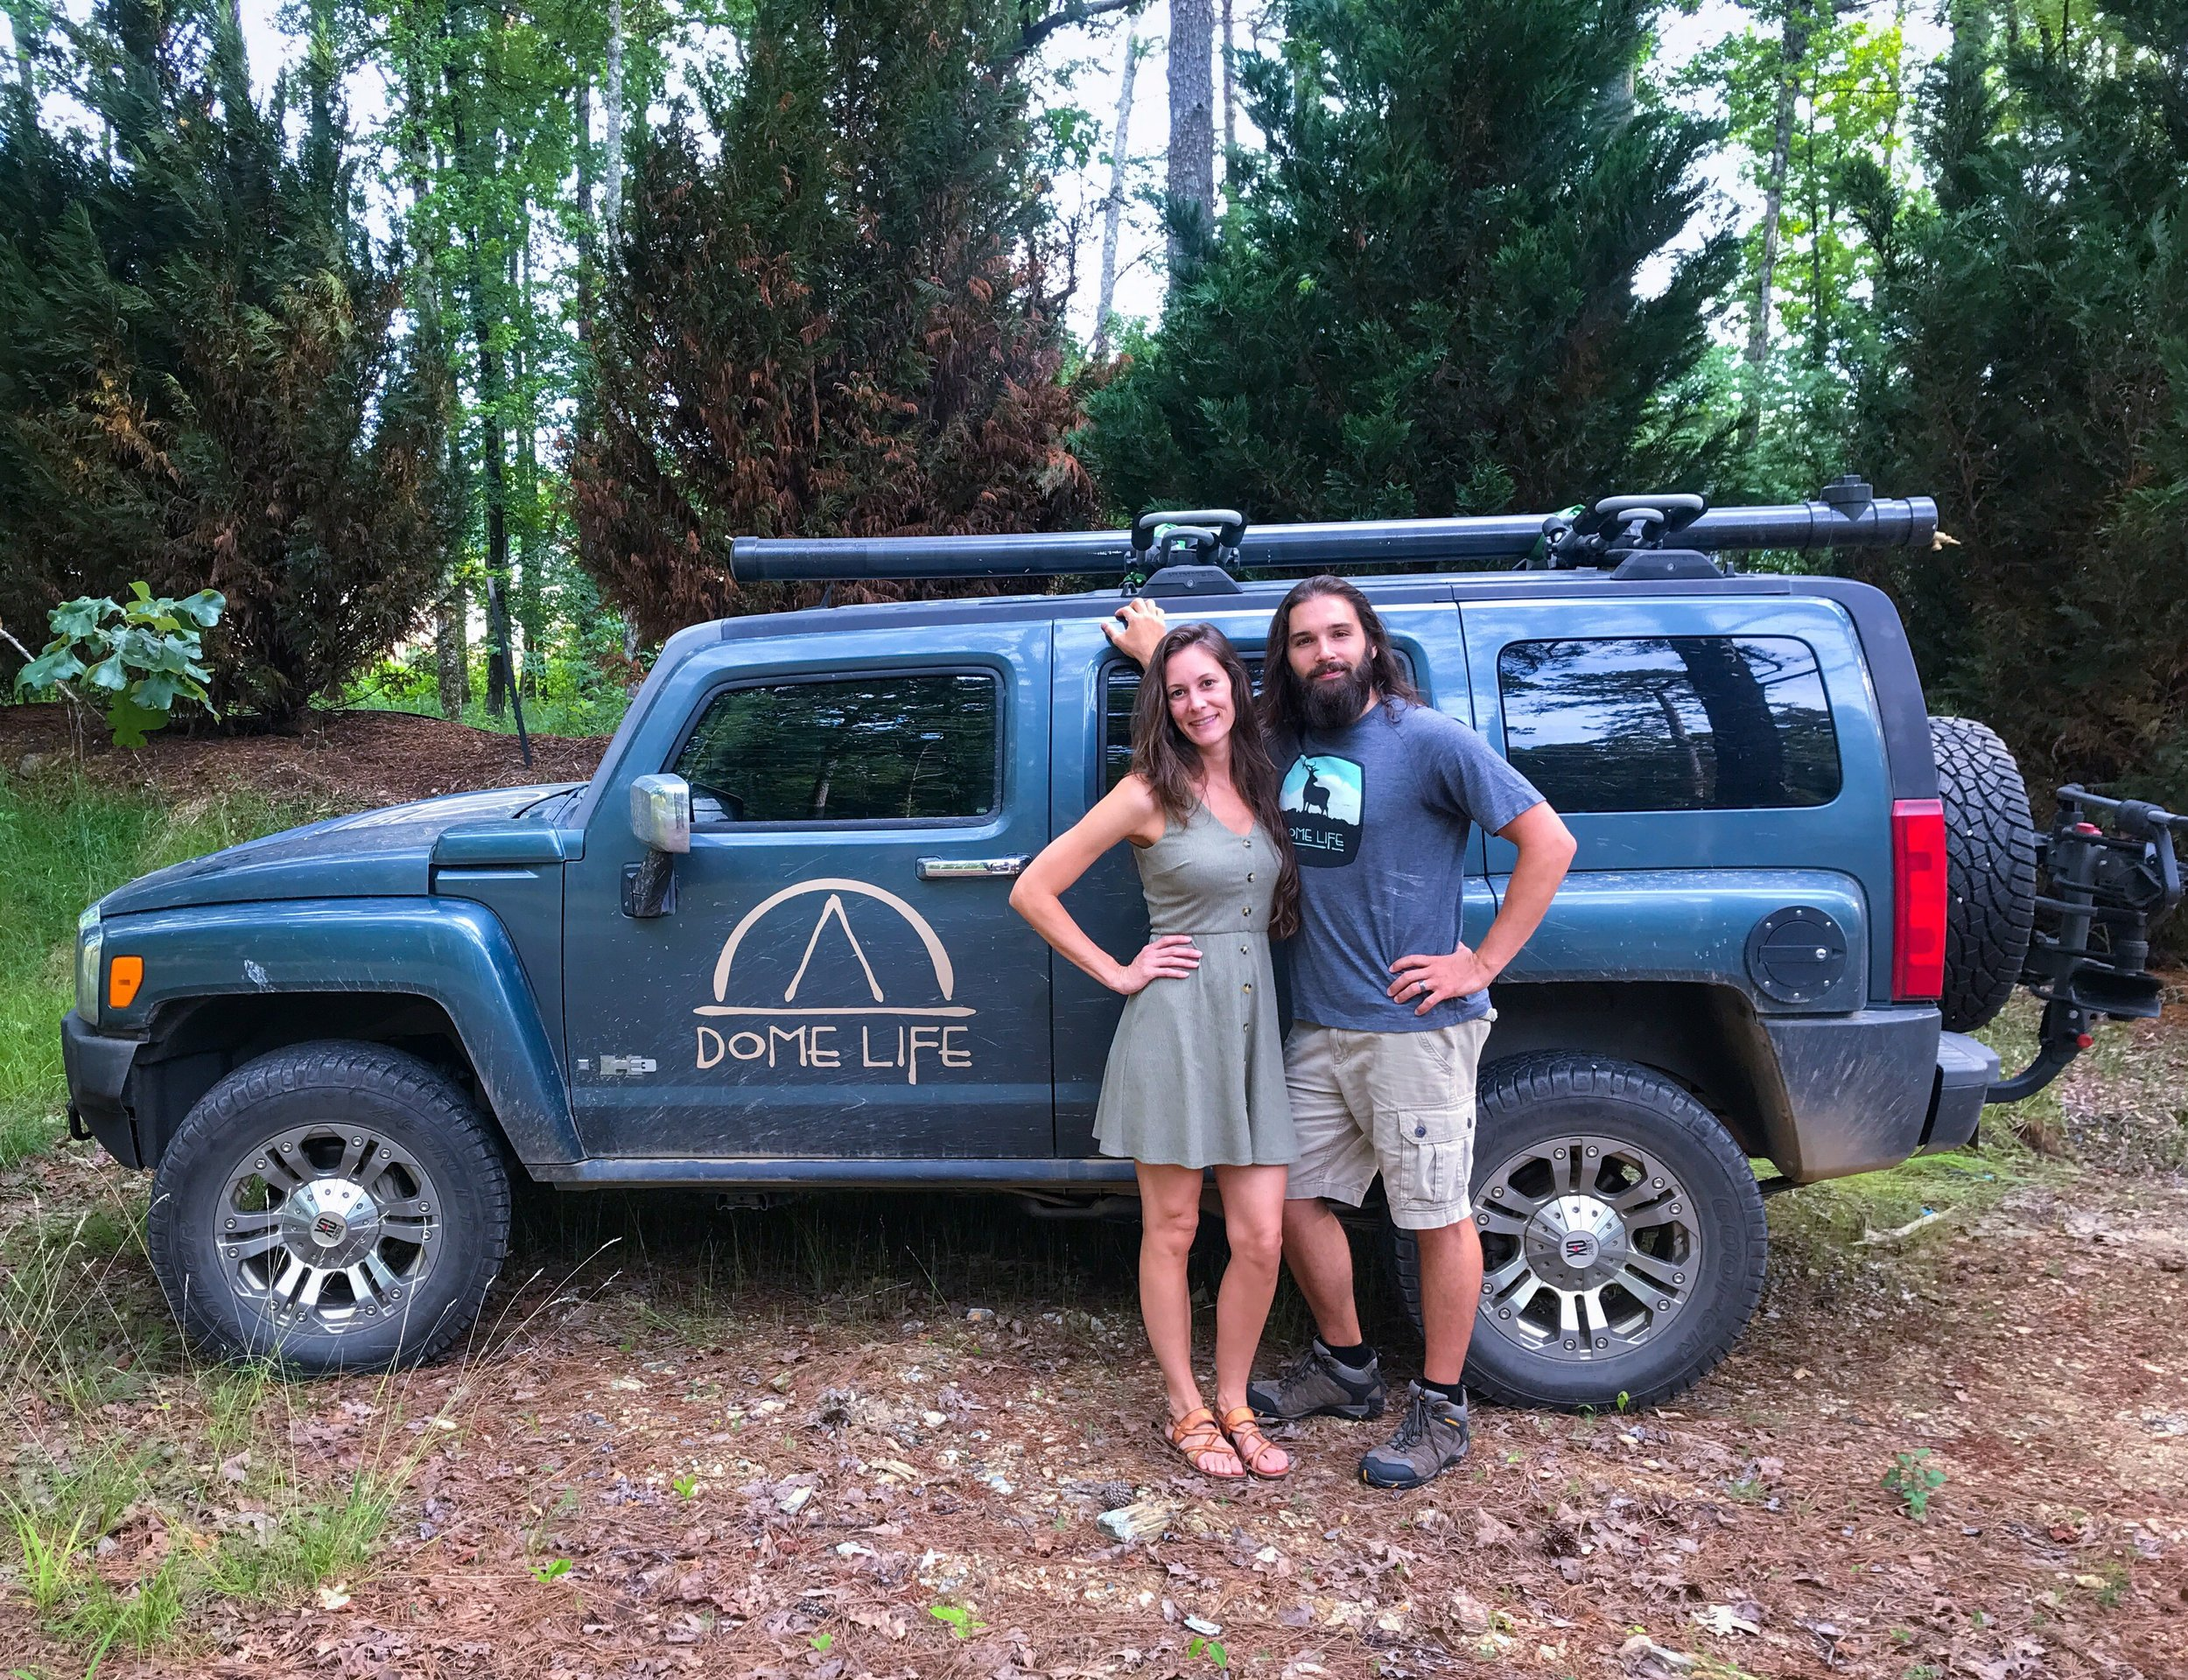 Cody and Kellie Oden load up for another weekend adventure. The couple launched Dome Life in September, a portion of proceeds going to help fund cleanups.